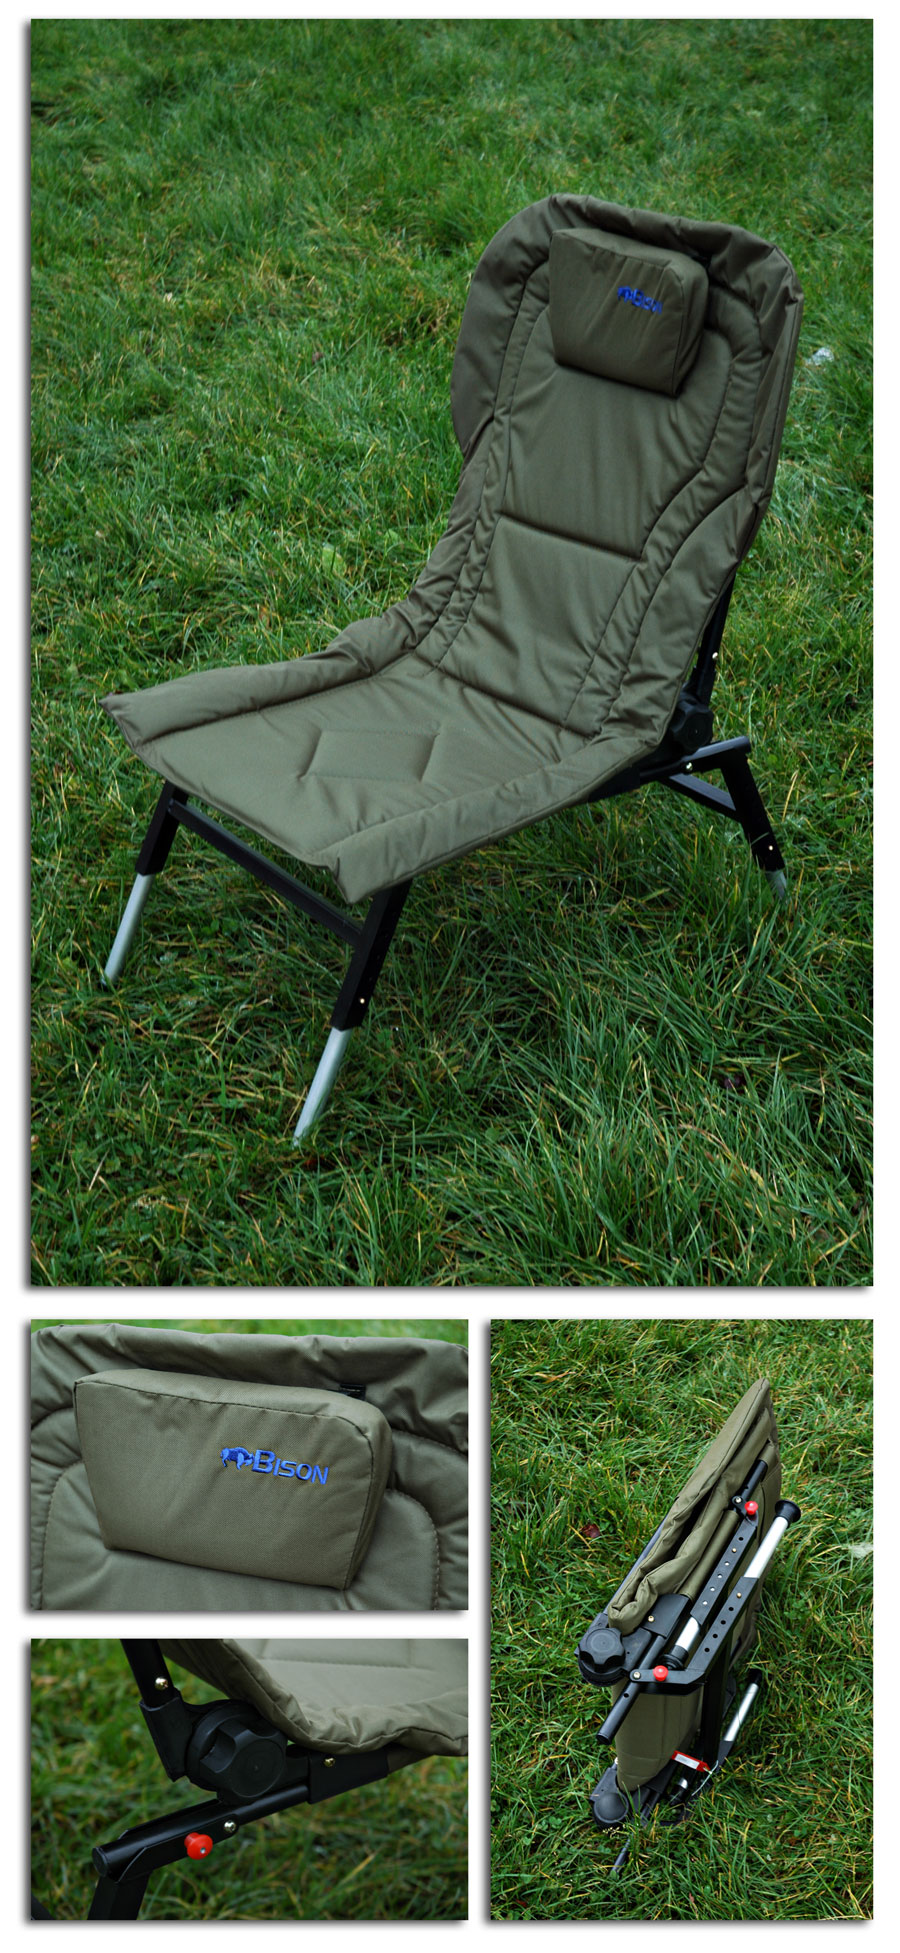 Fishing Chair Adjustable Legs And Back Recliner Fishing